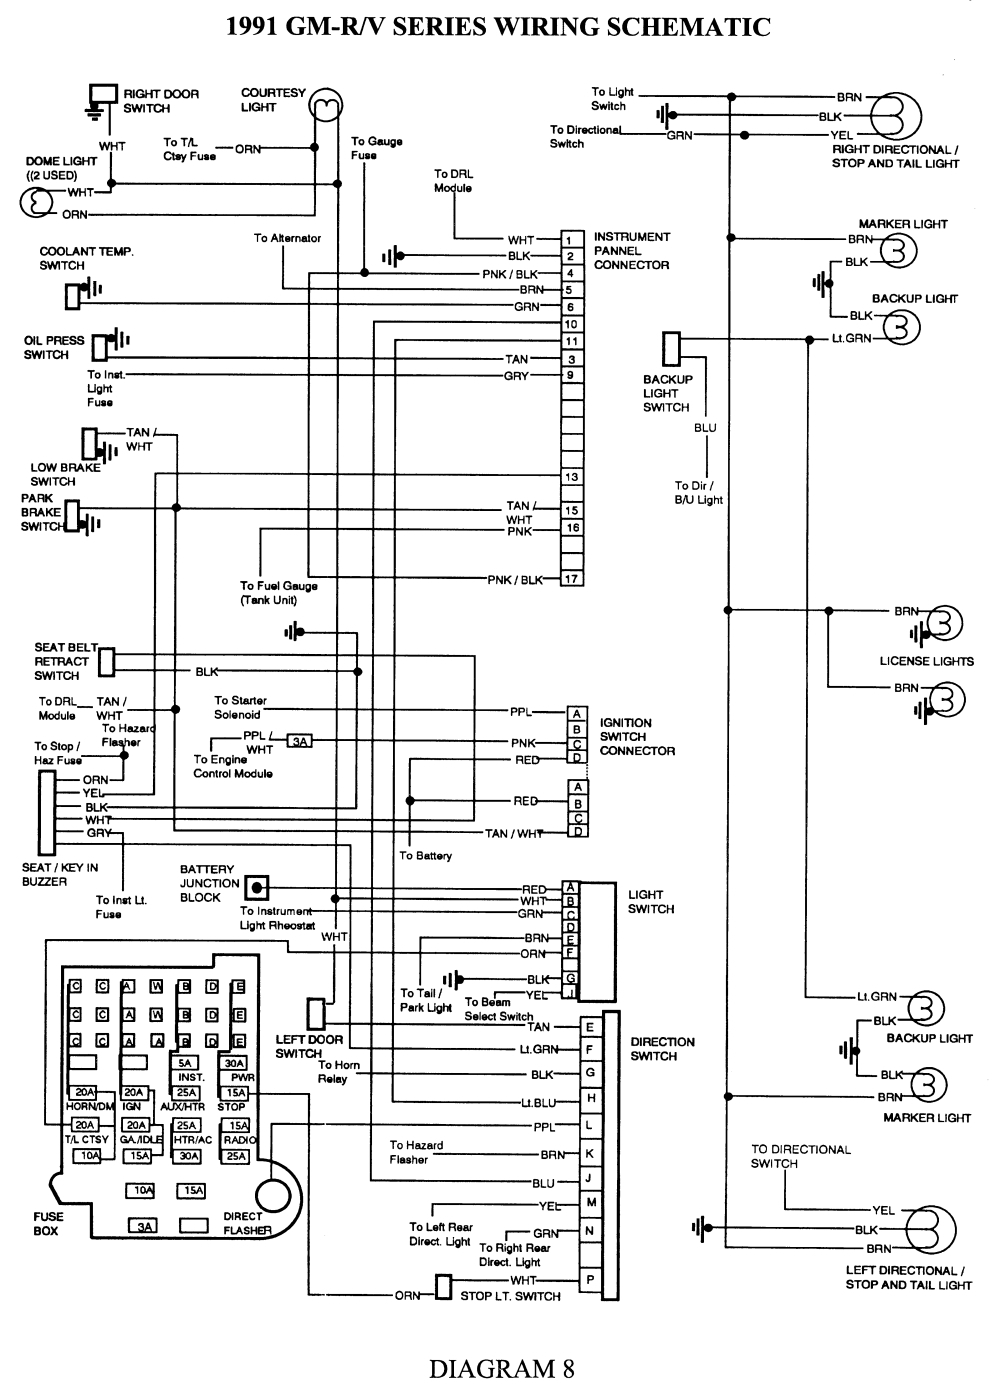 2007 Chevy Trailblazer Radio Wiring Diagram. Chevy. Wiring